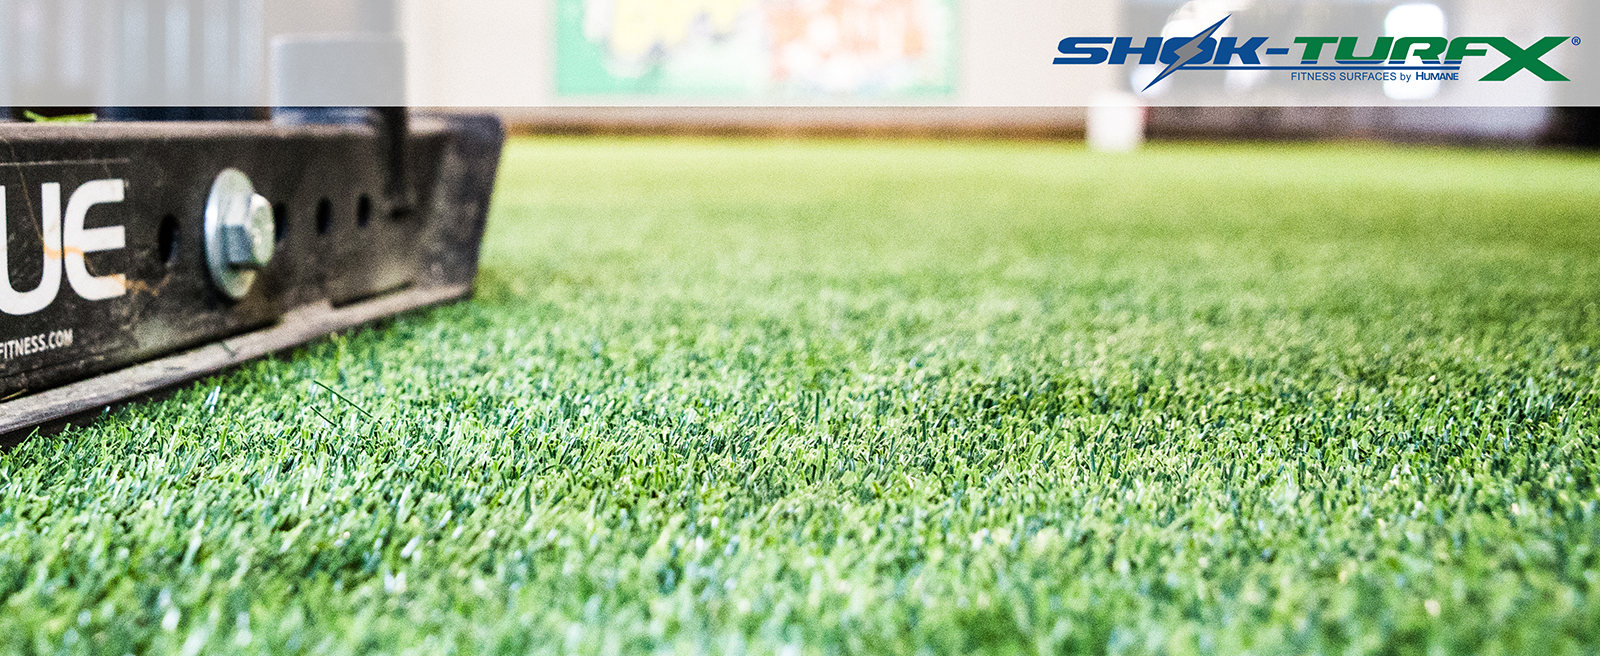 ShokTurfX: Premium Fitness Turf, Fully Customizable in a range of colors